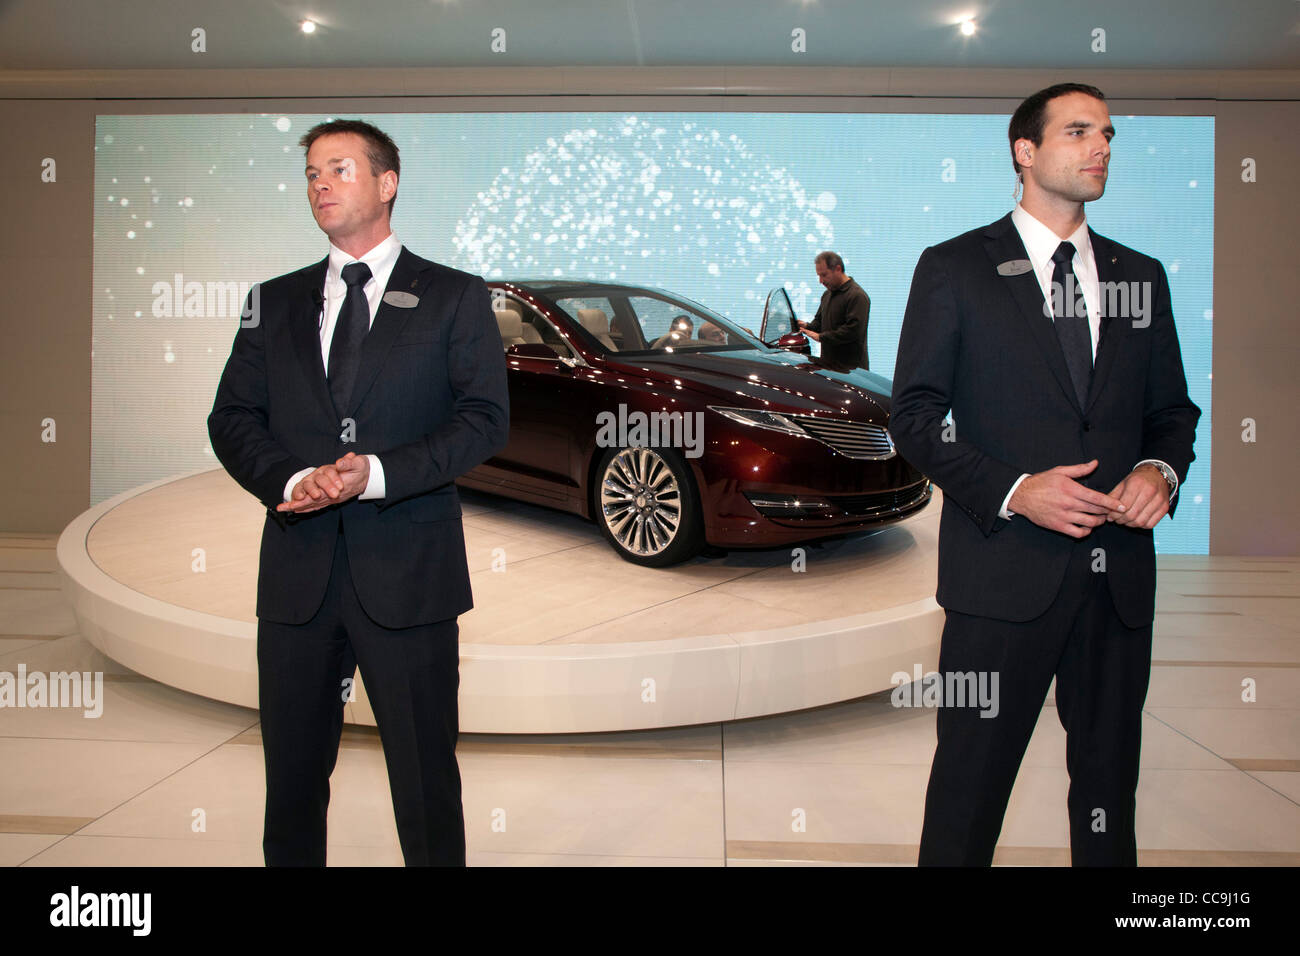 Models dressed as security agents protect the 2013 Lincoln MKZ at the Detroit Auto Show - Stock Image